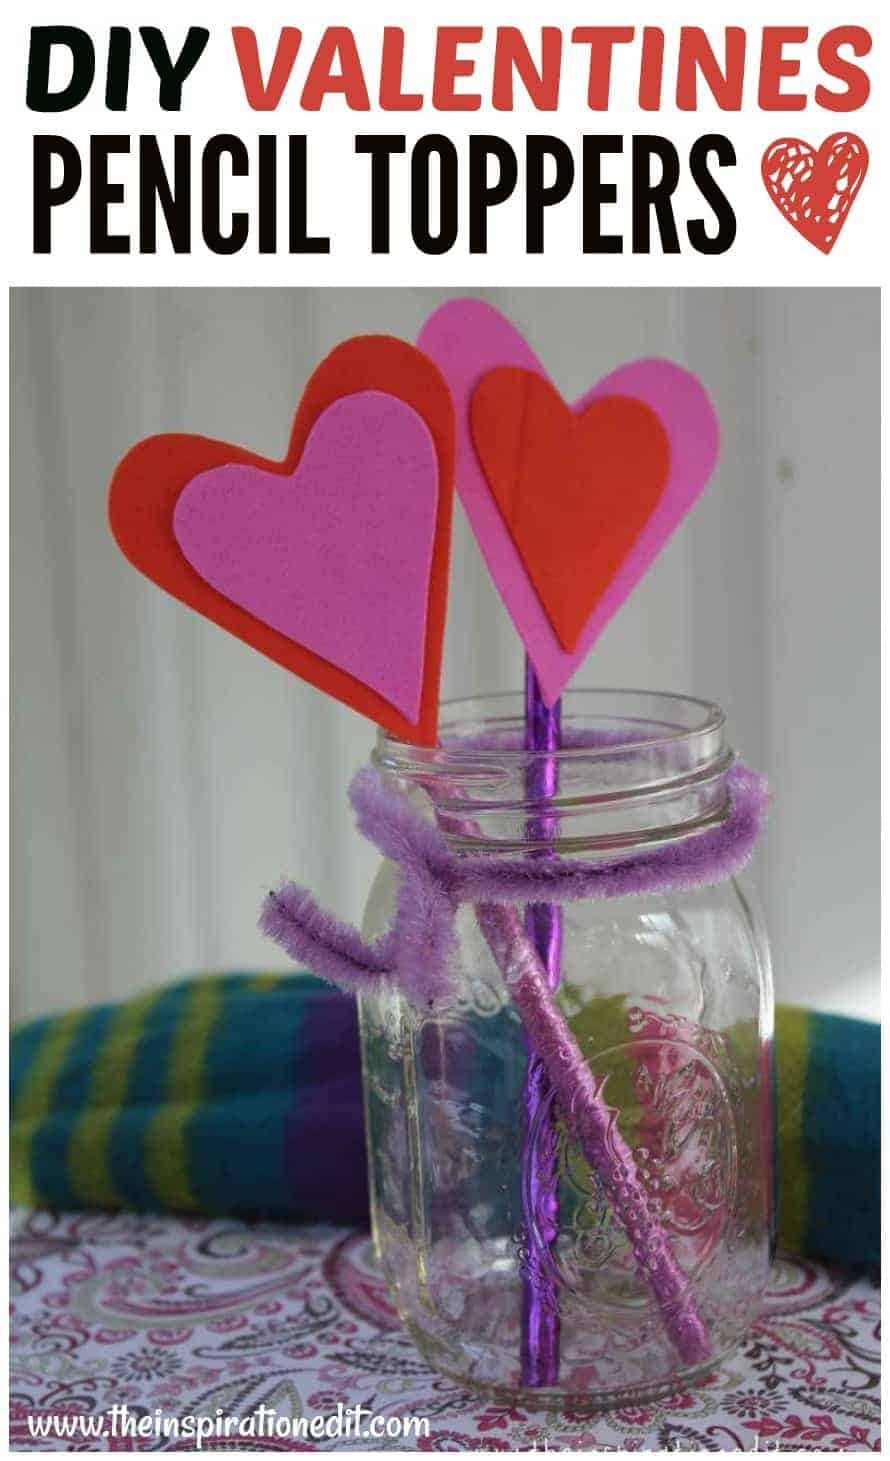 VALENTINES CRAFT DIY PENCIL TOPPERS